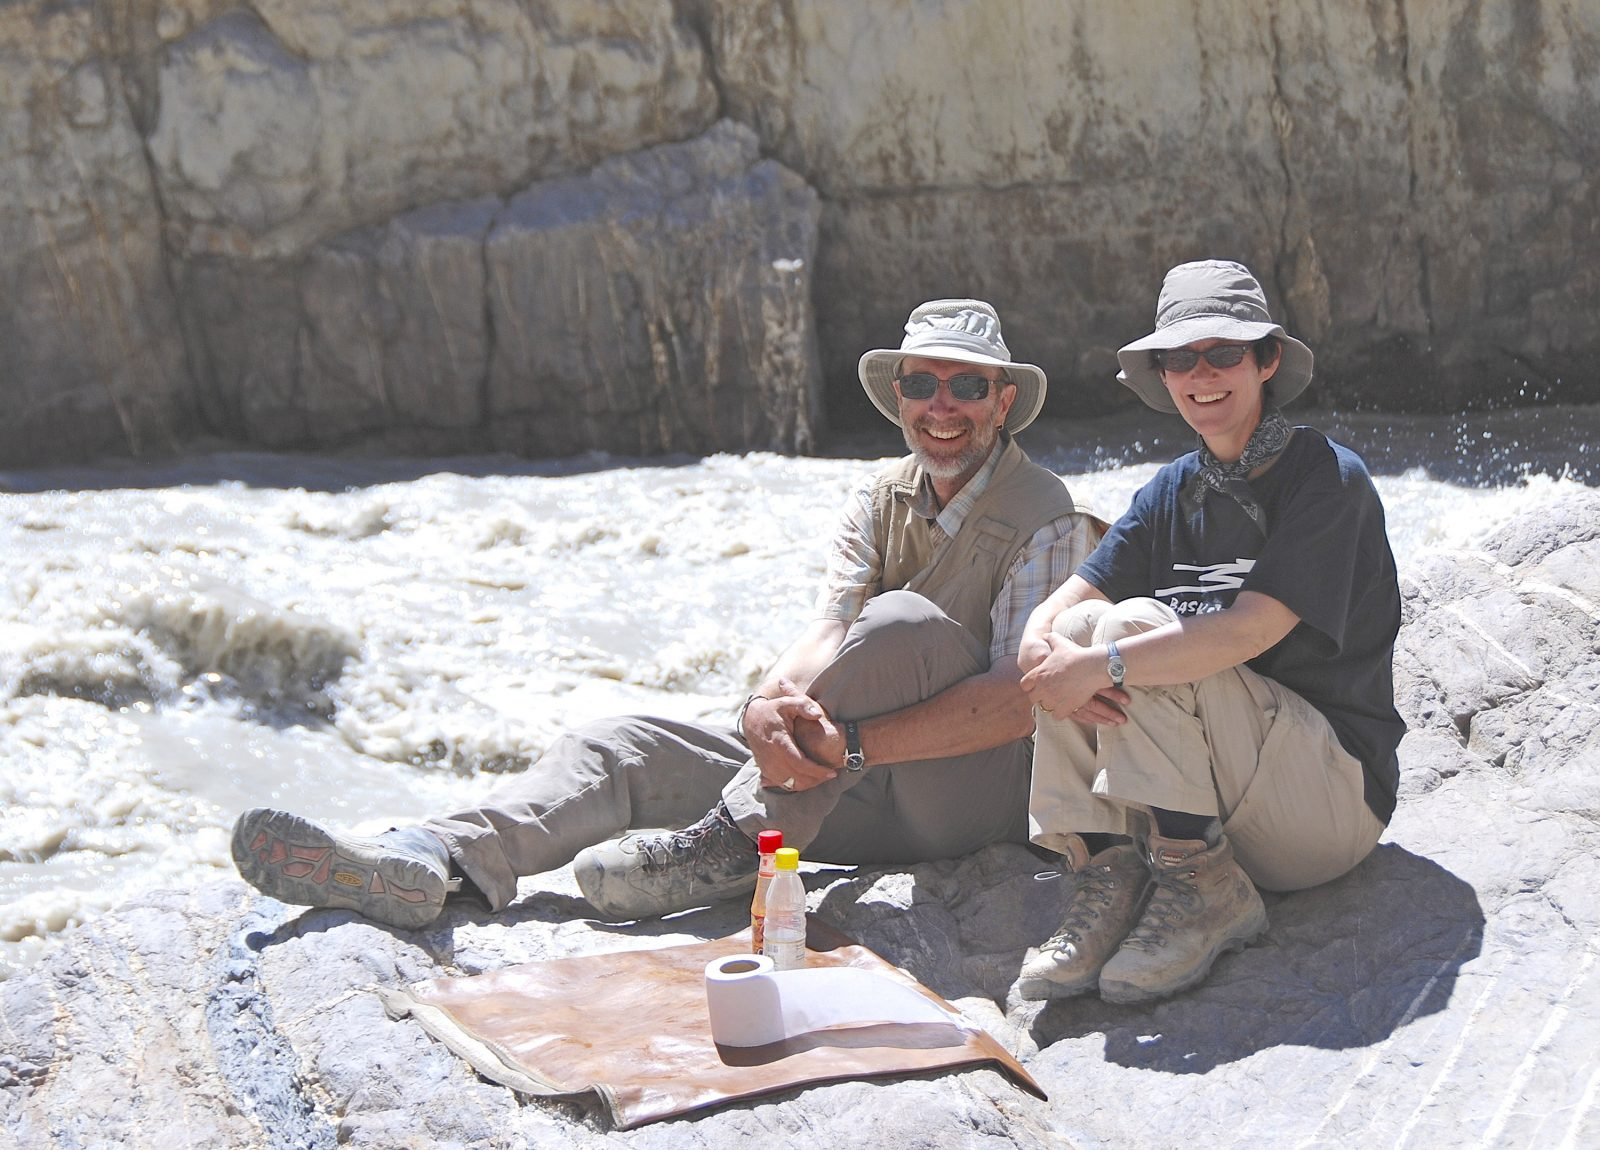 David Butz and Nancy cook sitting on the ground in front of rocks in Pakistan